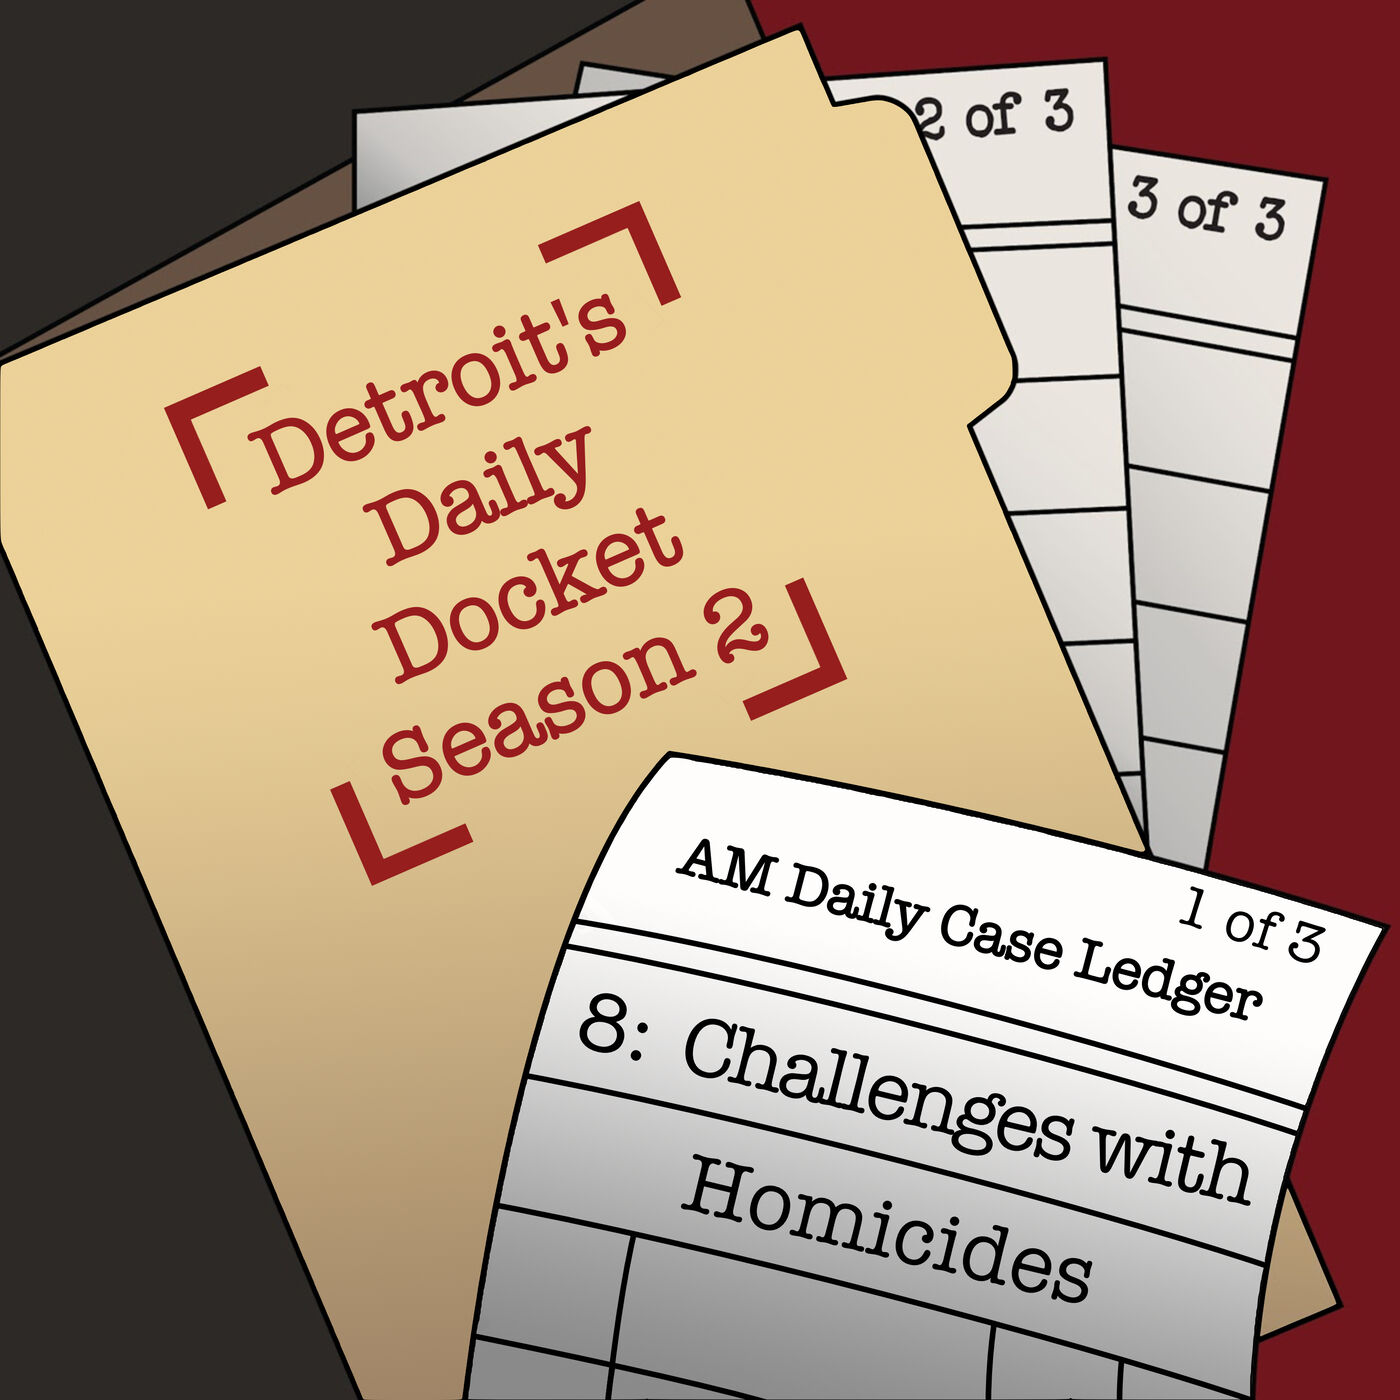 Challenges with Homicides